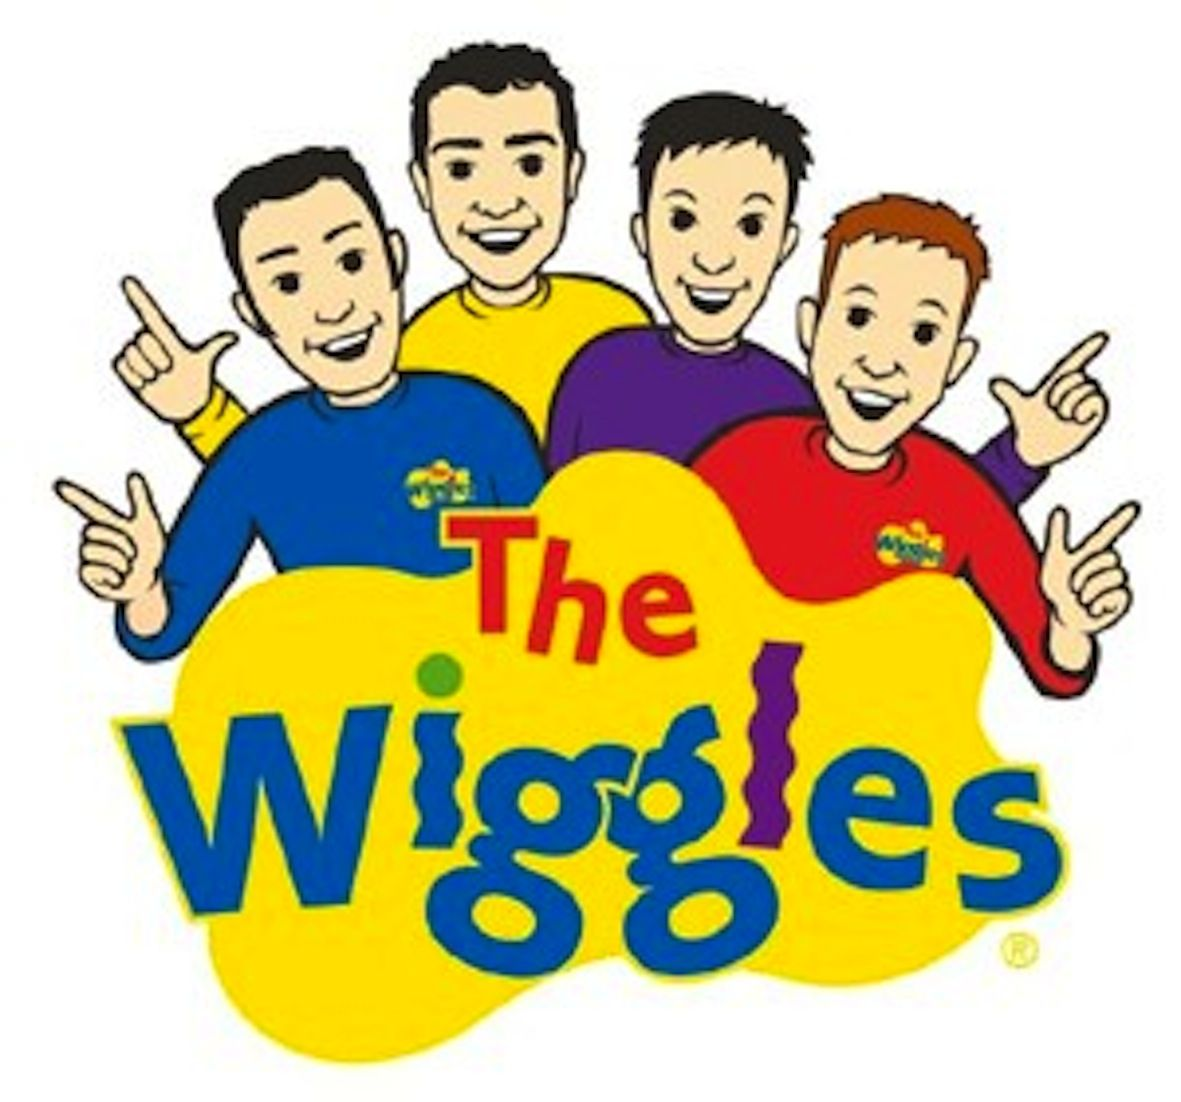 Free The Wiggles Clip Art Yahoo Image Search Results The